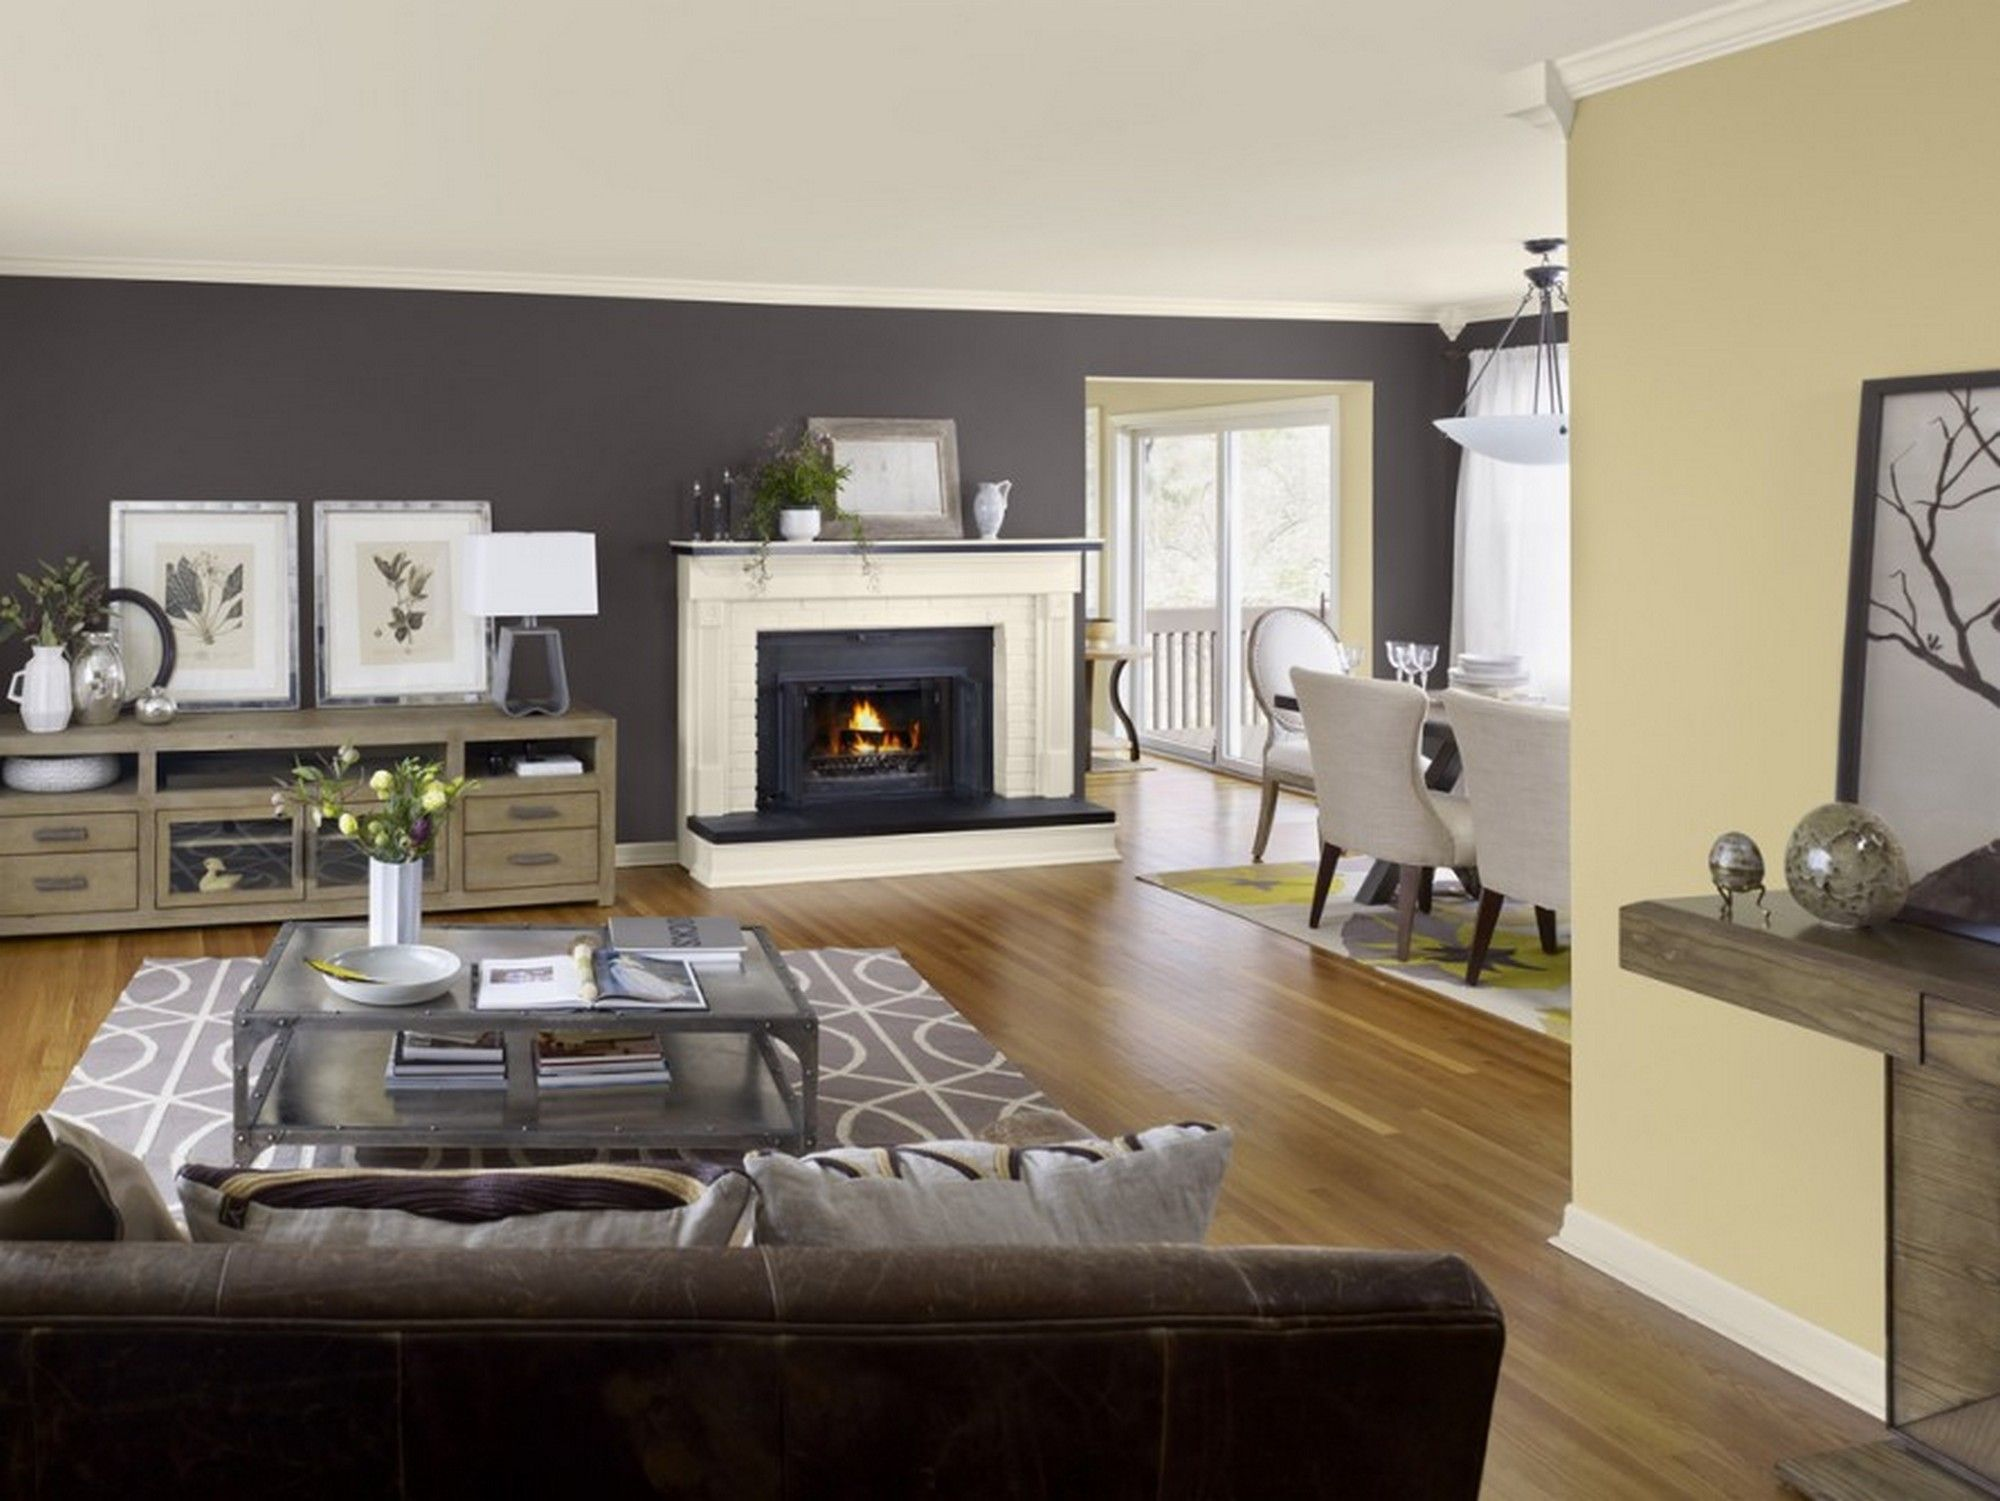 Great room paint colors light color with dark brown accent walls google search great room Colors to paint rooms